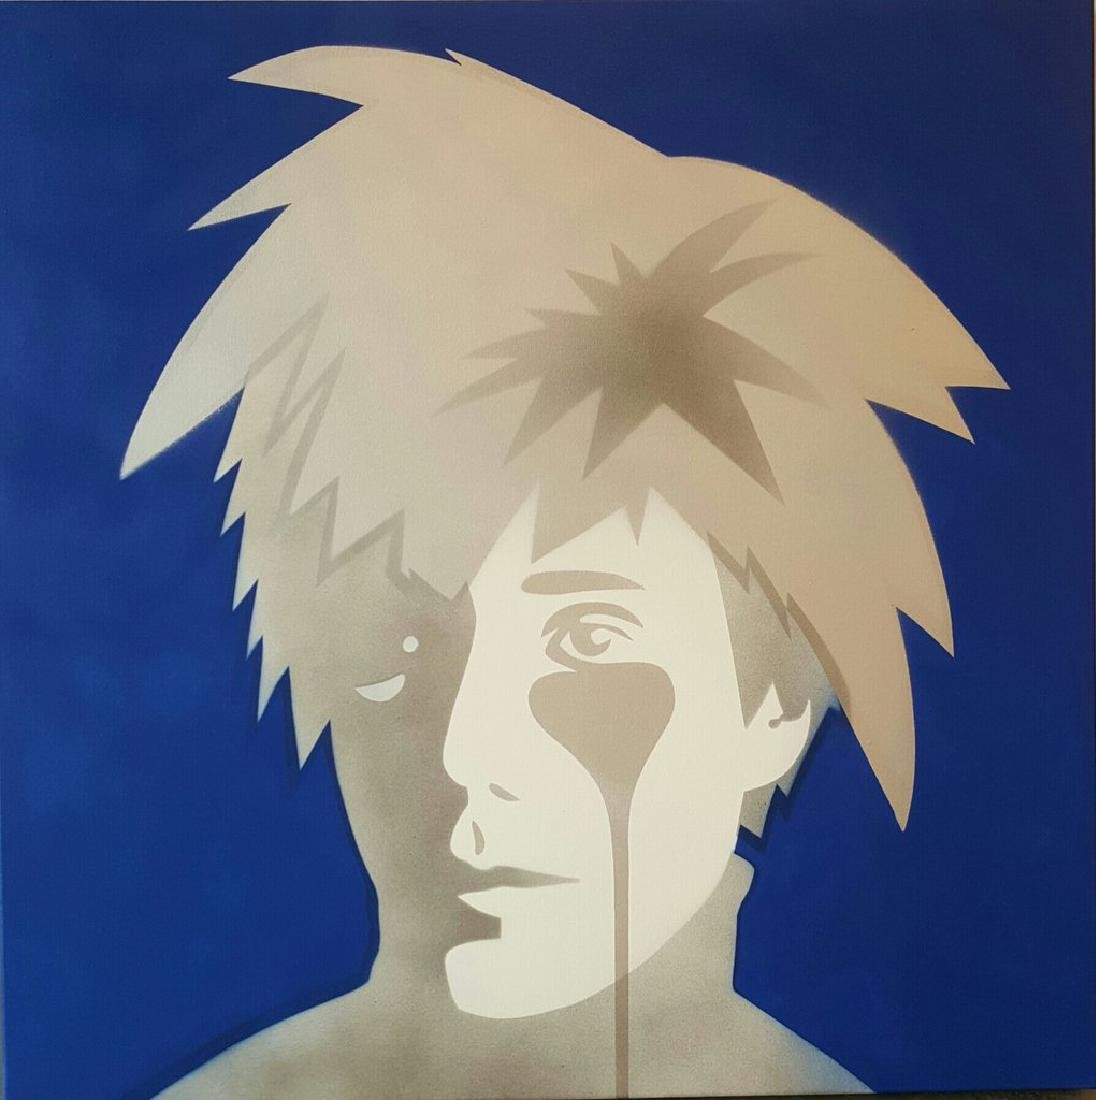 PURE EVIL Valerie Solanis' Nightmare: Andy Warhol